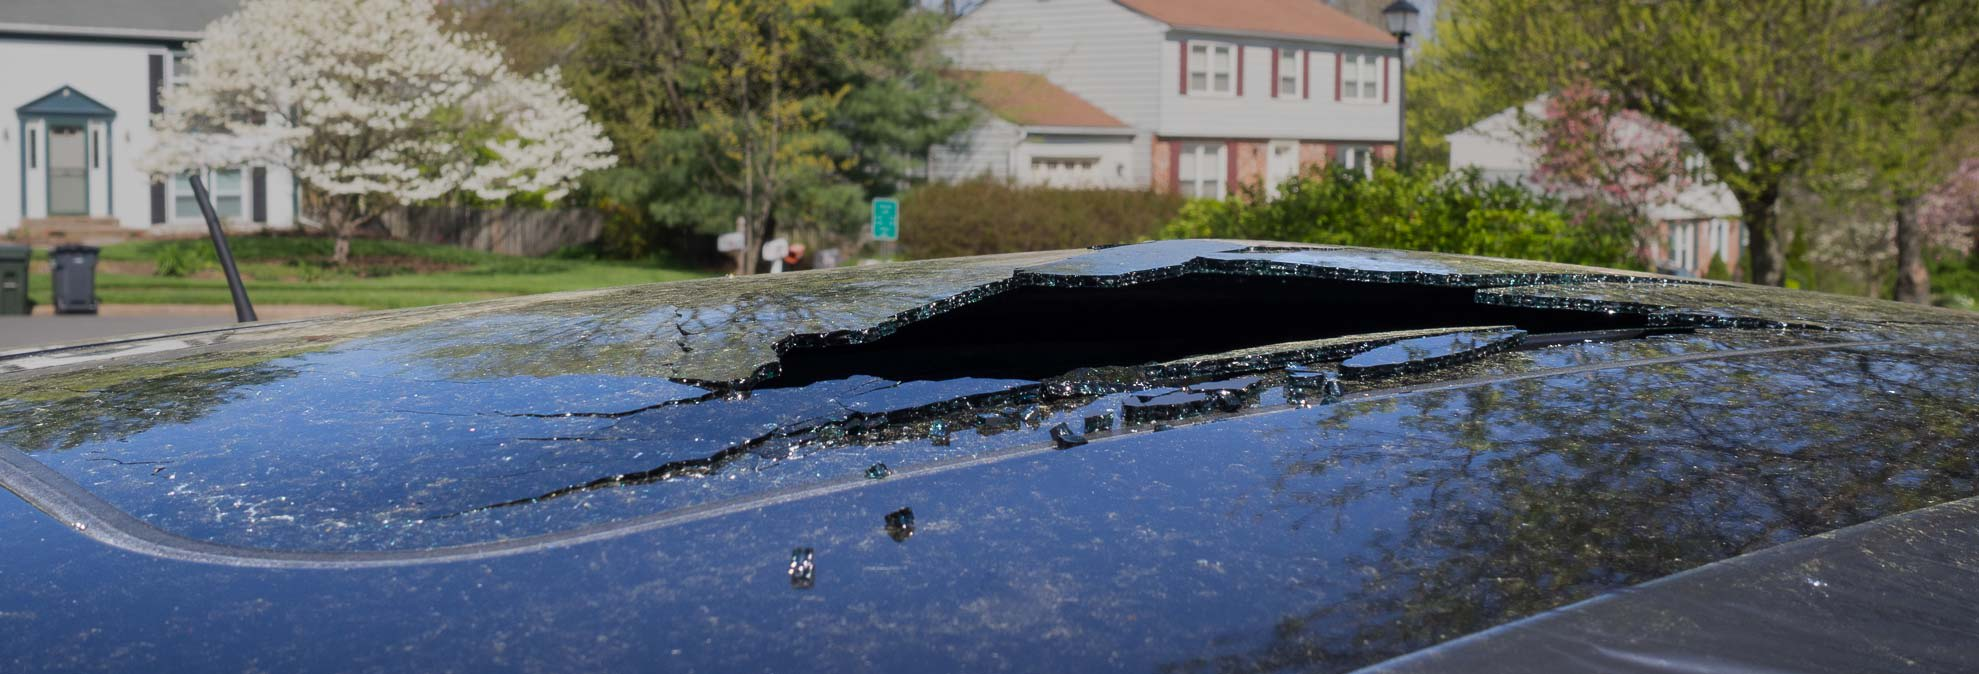 Exploding Sunroof Cases Head To Court Consumer Reports